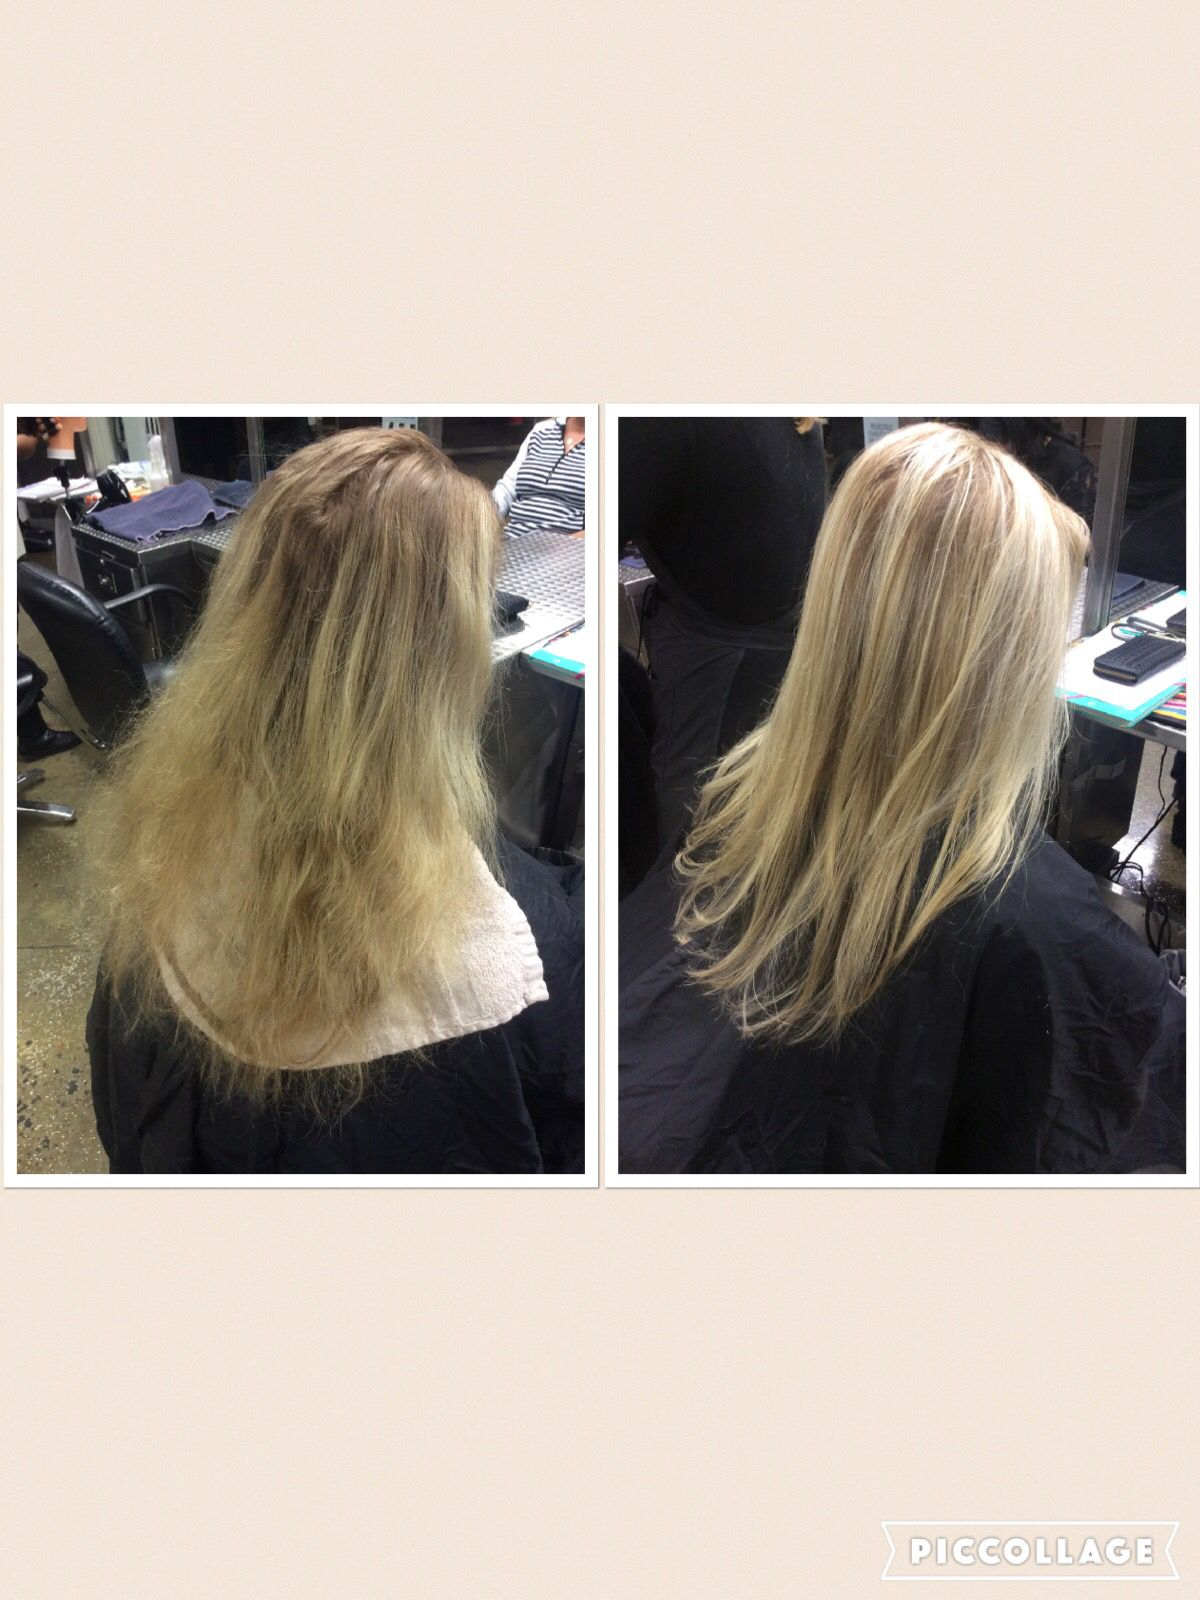 Highlights Wanted To Blend Into Her New Growth Used Medium Fine Weaves Throughout Hair 6 Section Partial Foil Styling Products Smooth